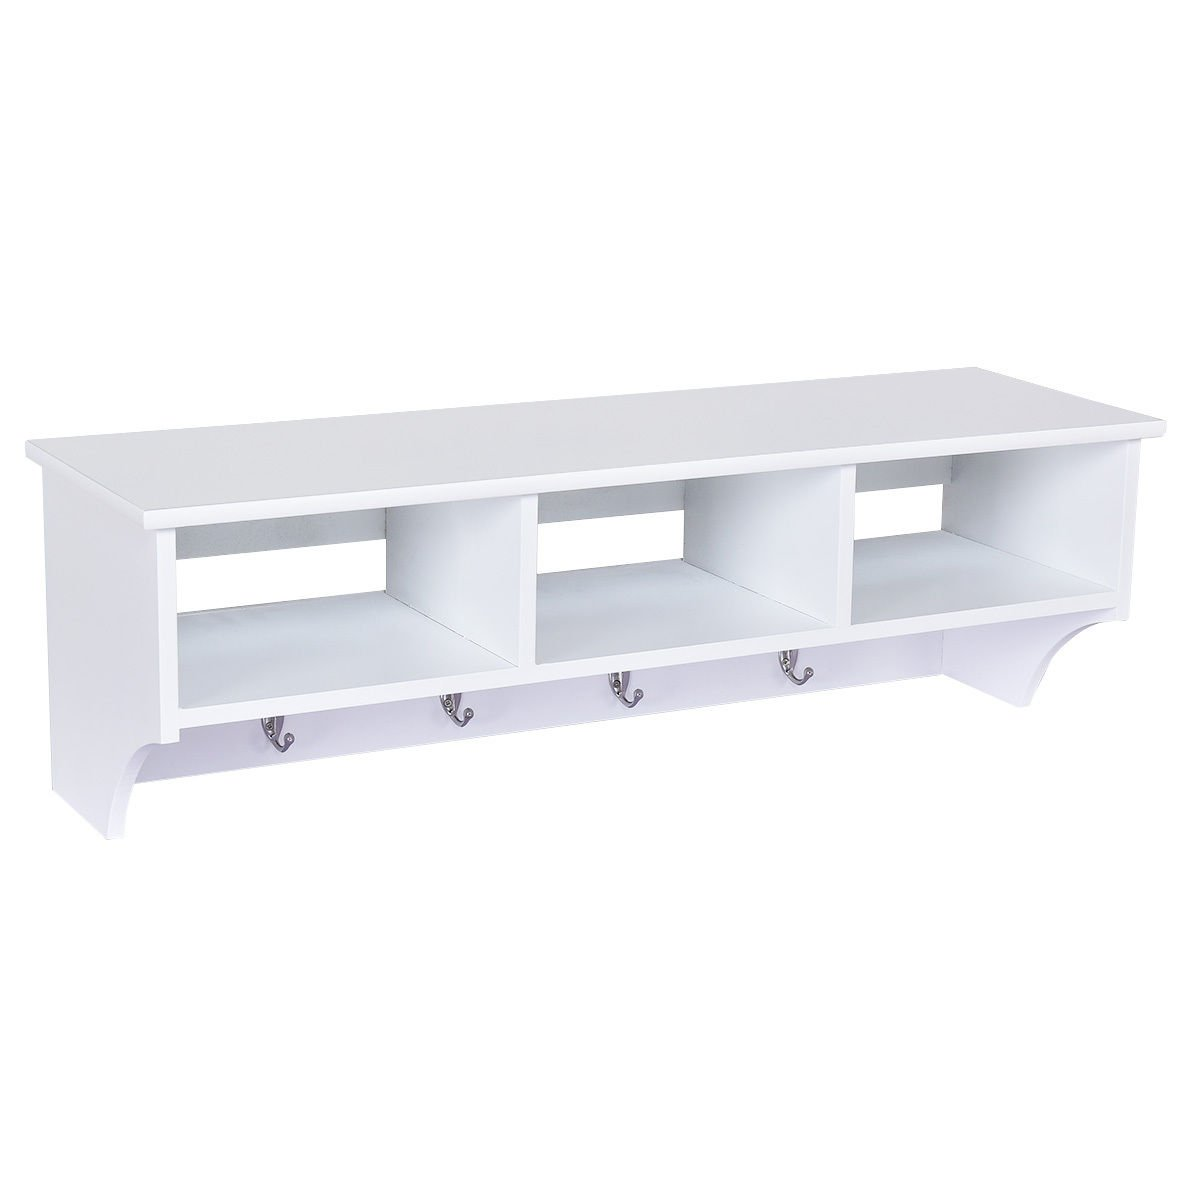 wall mounted floating shelves coat rack storage white shelf with hooks organizer hallway home kitchen movable trolley bathroom over sink cabinets utility table hanging desk drawer